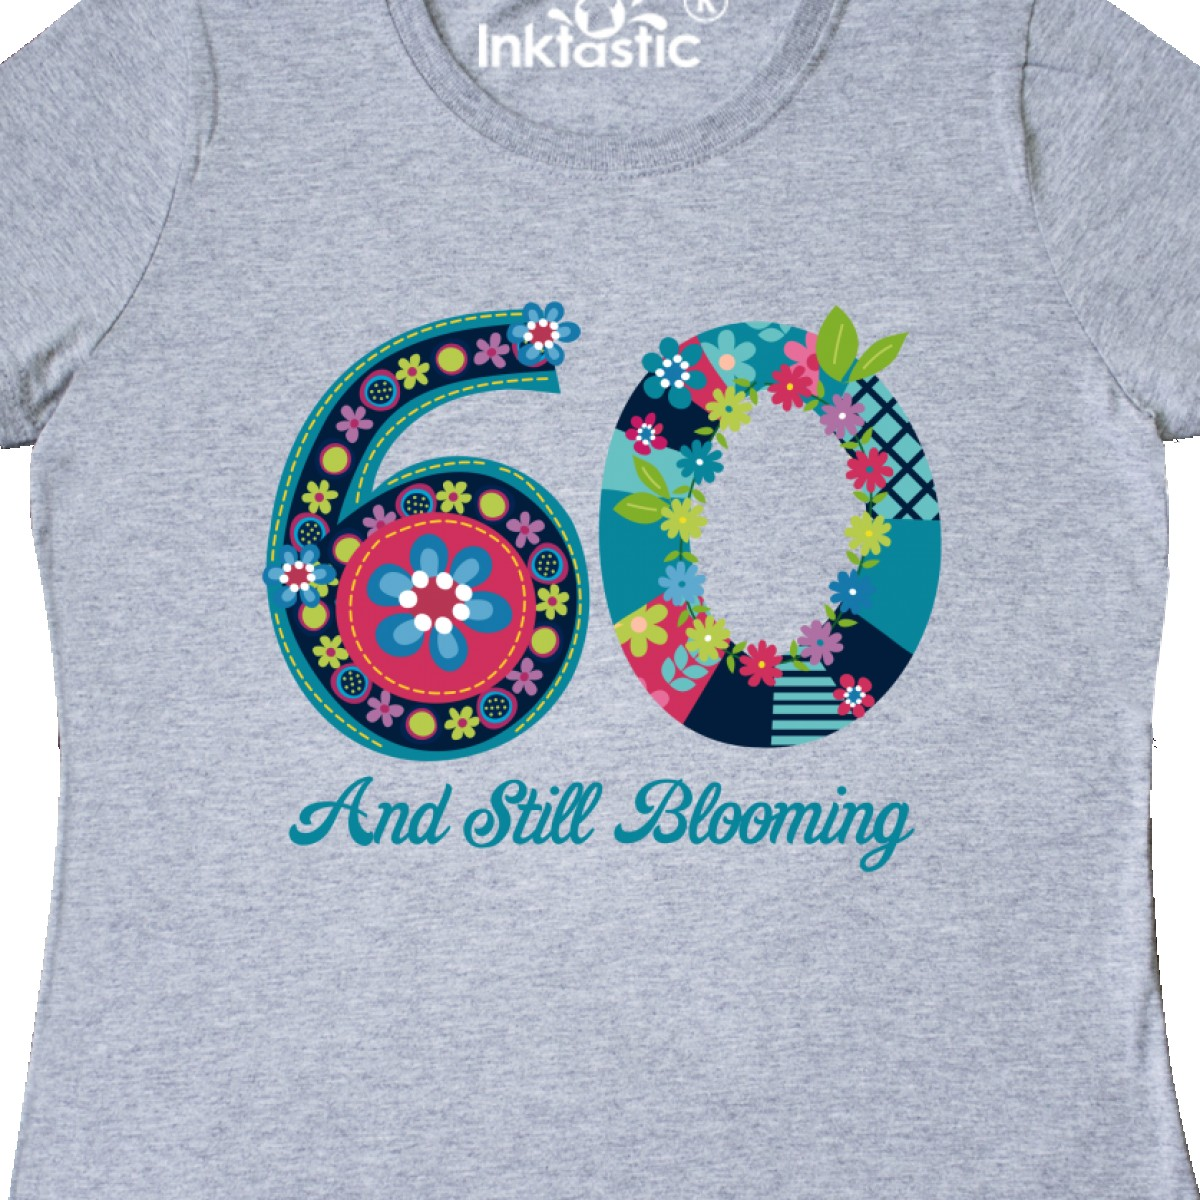 Inktastic Blooming 60th Birthday Women/'s T-Shirt Flower Whimsical Power Garden